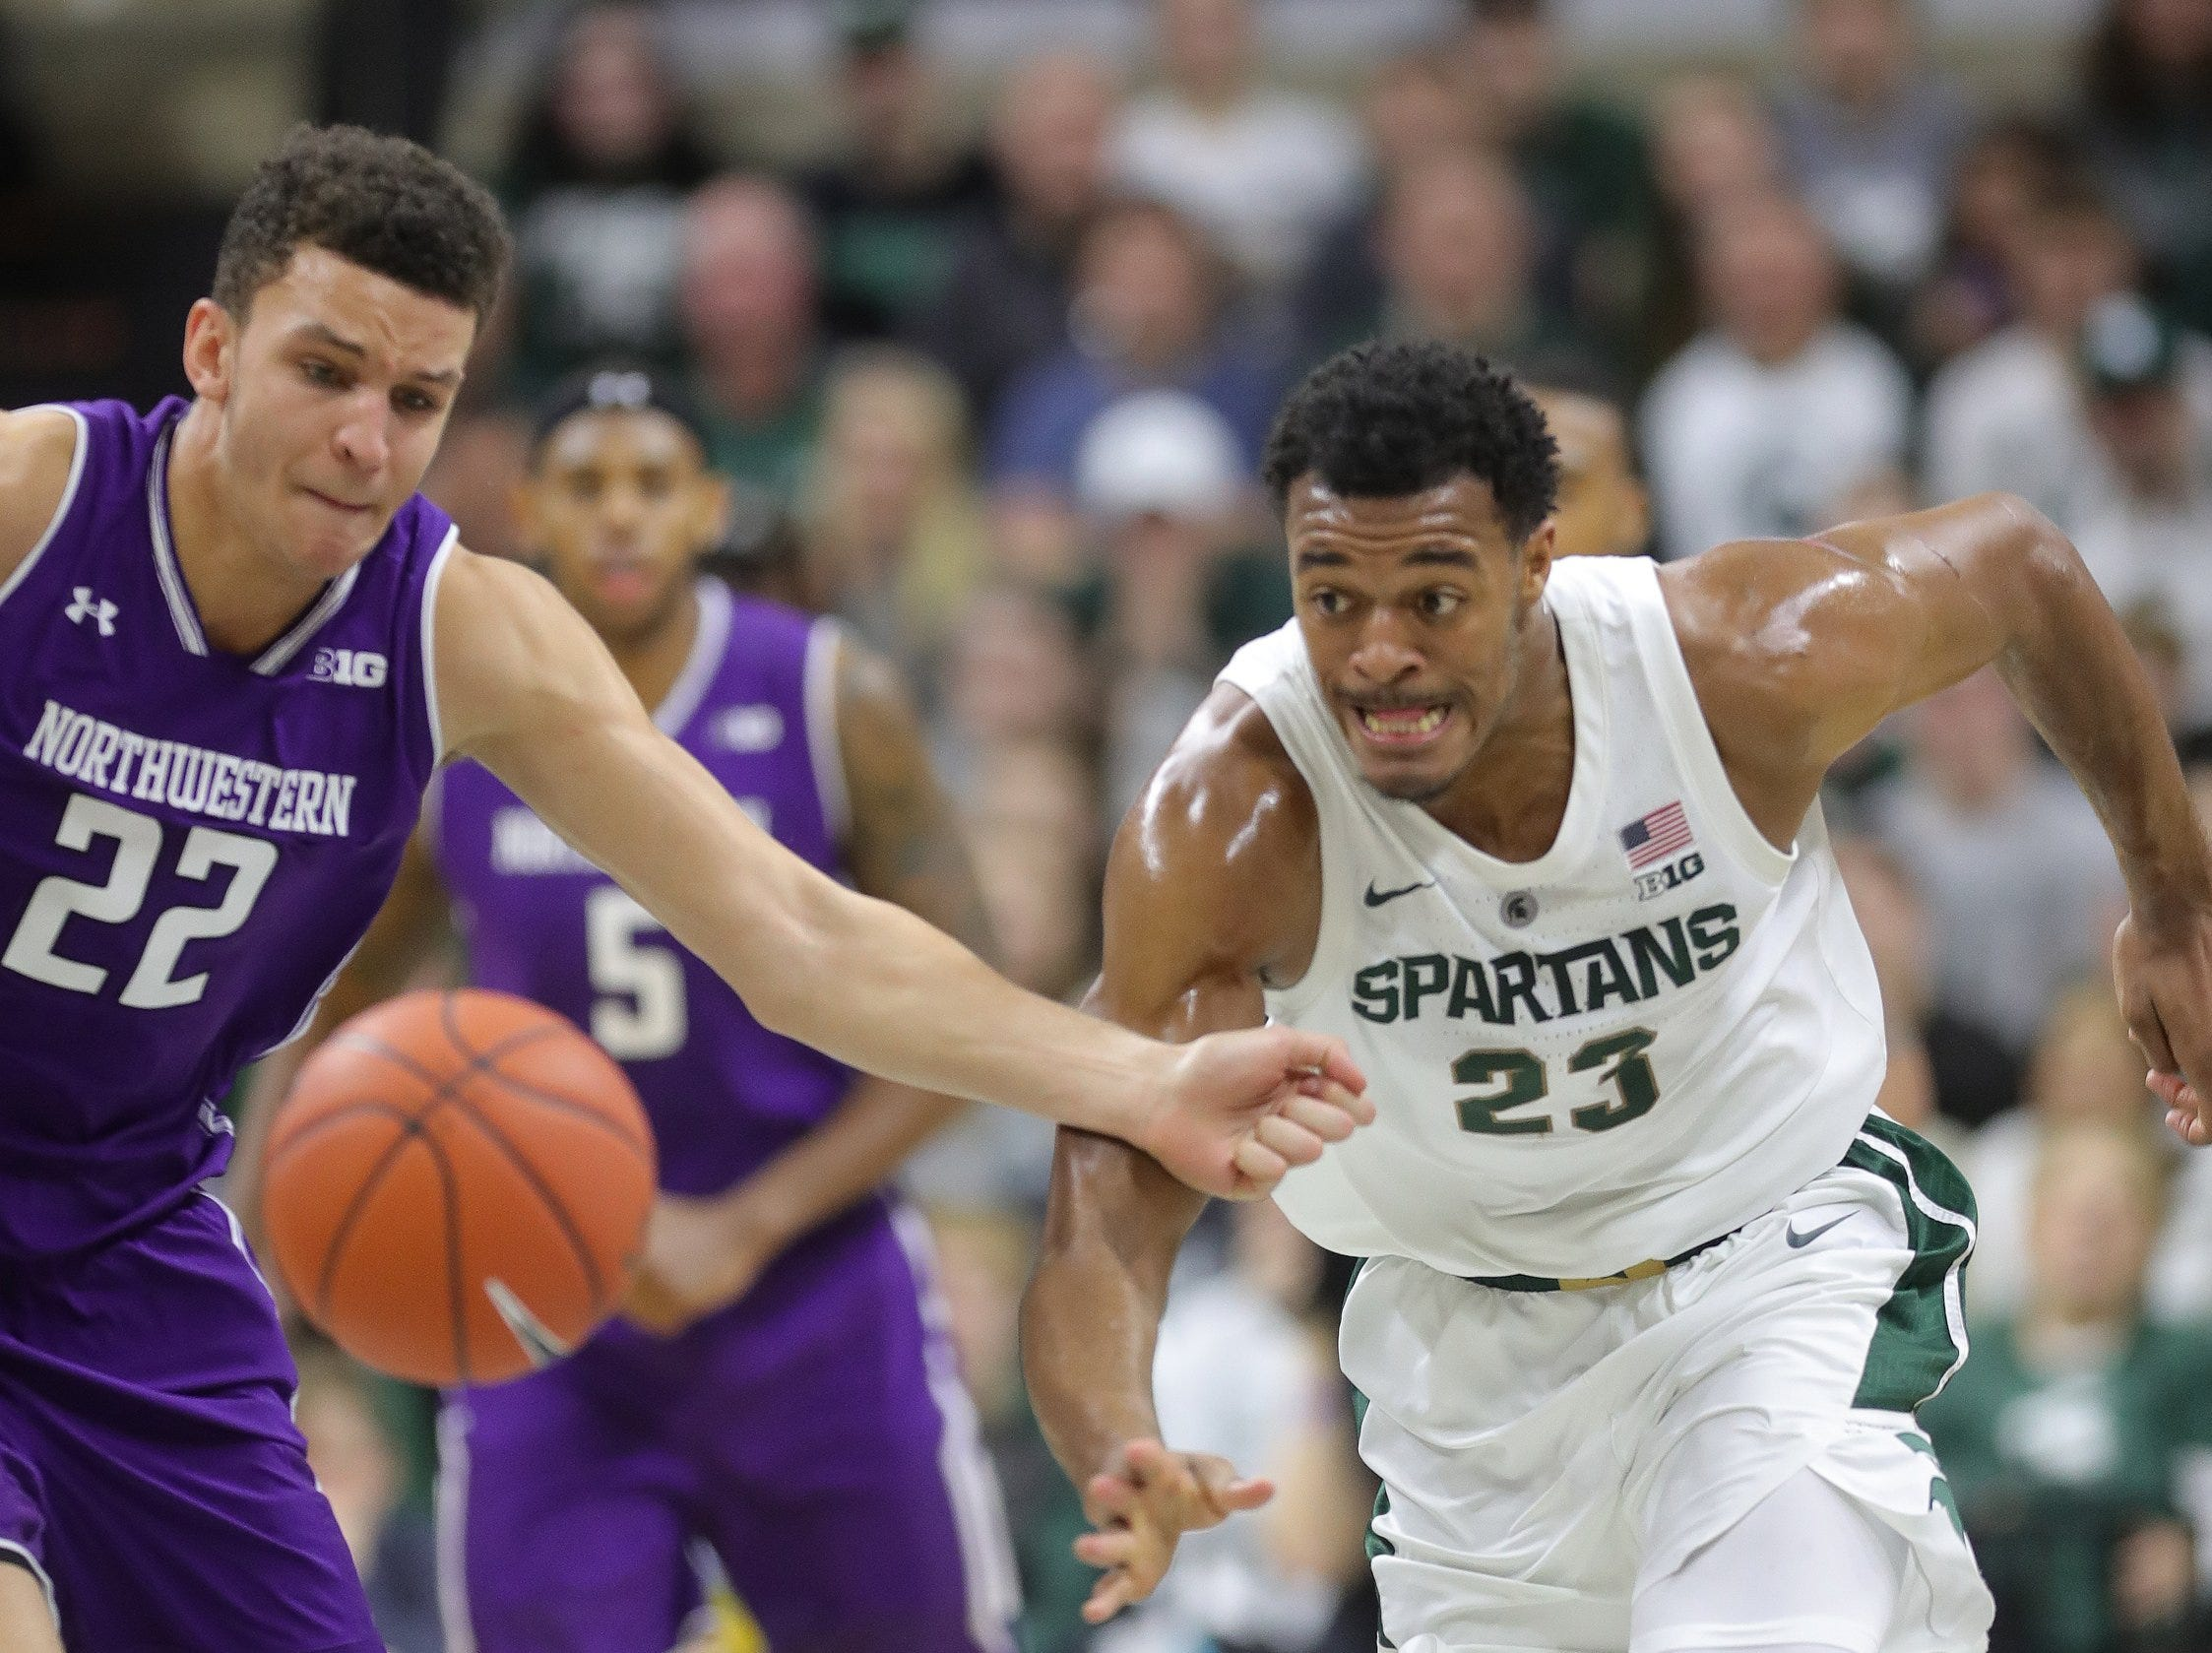 Michigan State forward Xavier Tillman defends against Northwestern forward Pete Nance during first half action Wednesday, January 2, 2019 at the Breslin Center in East Lansing, Mich.